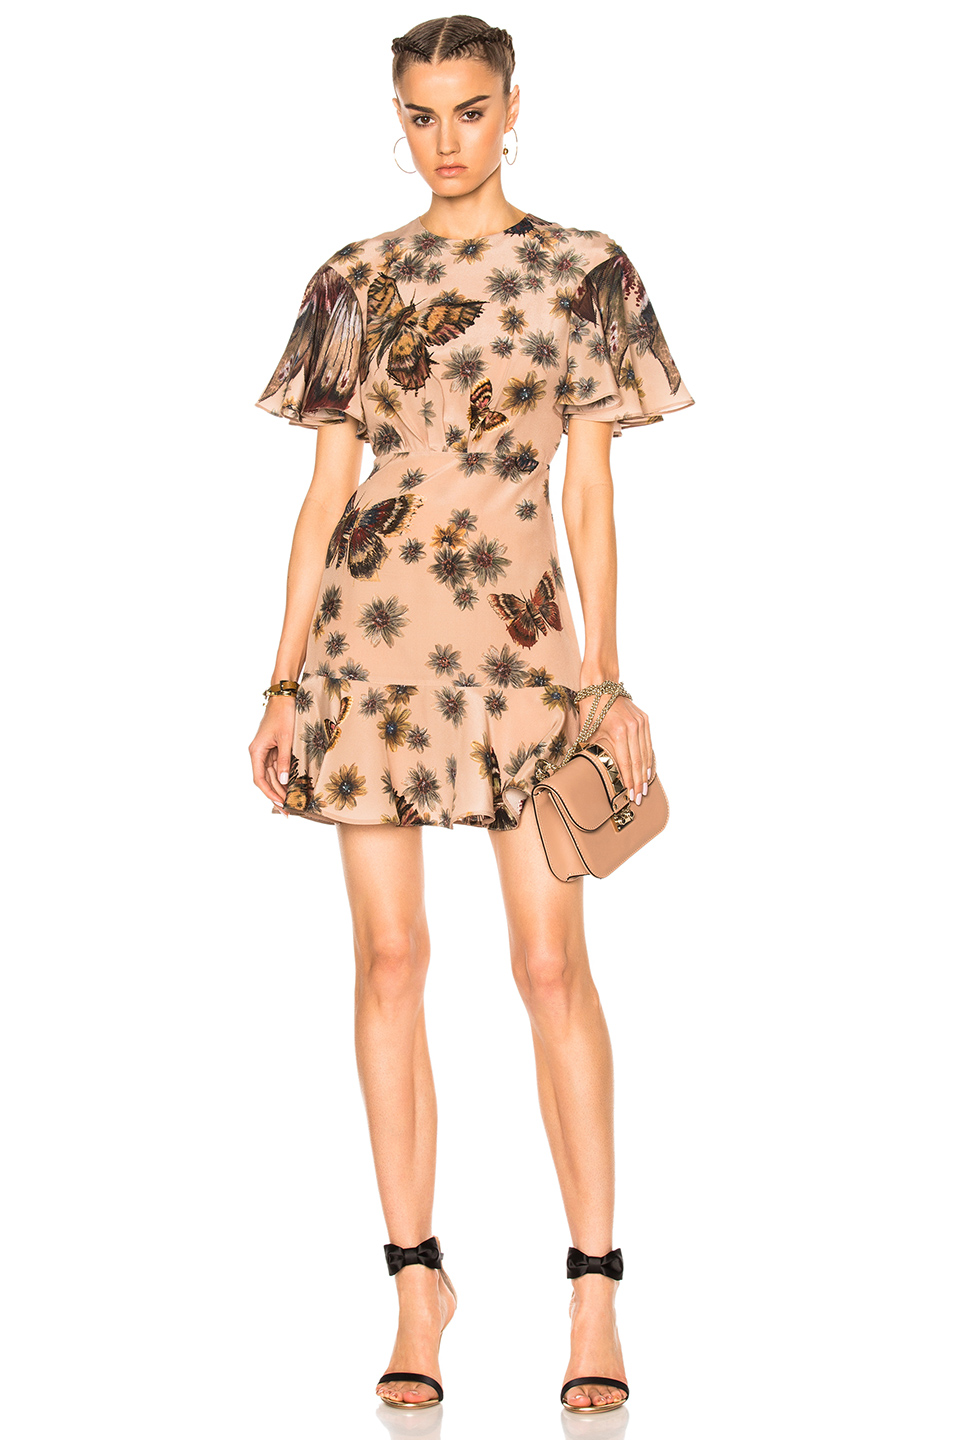 Valentino Butterfly Dress in Floral,Brown,Neutral